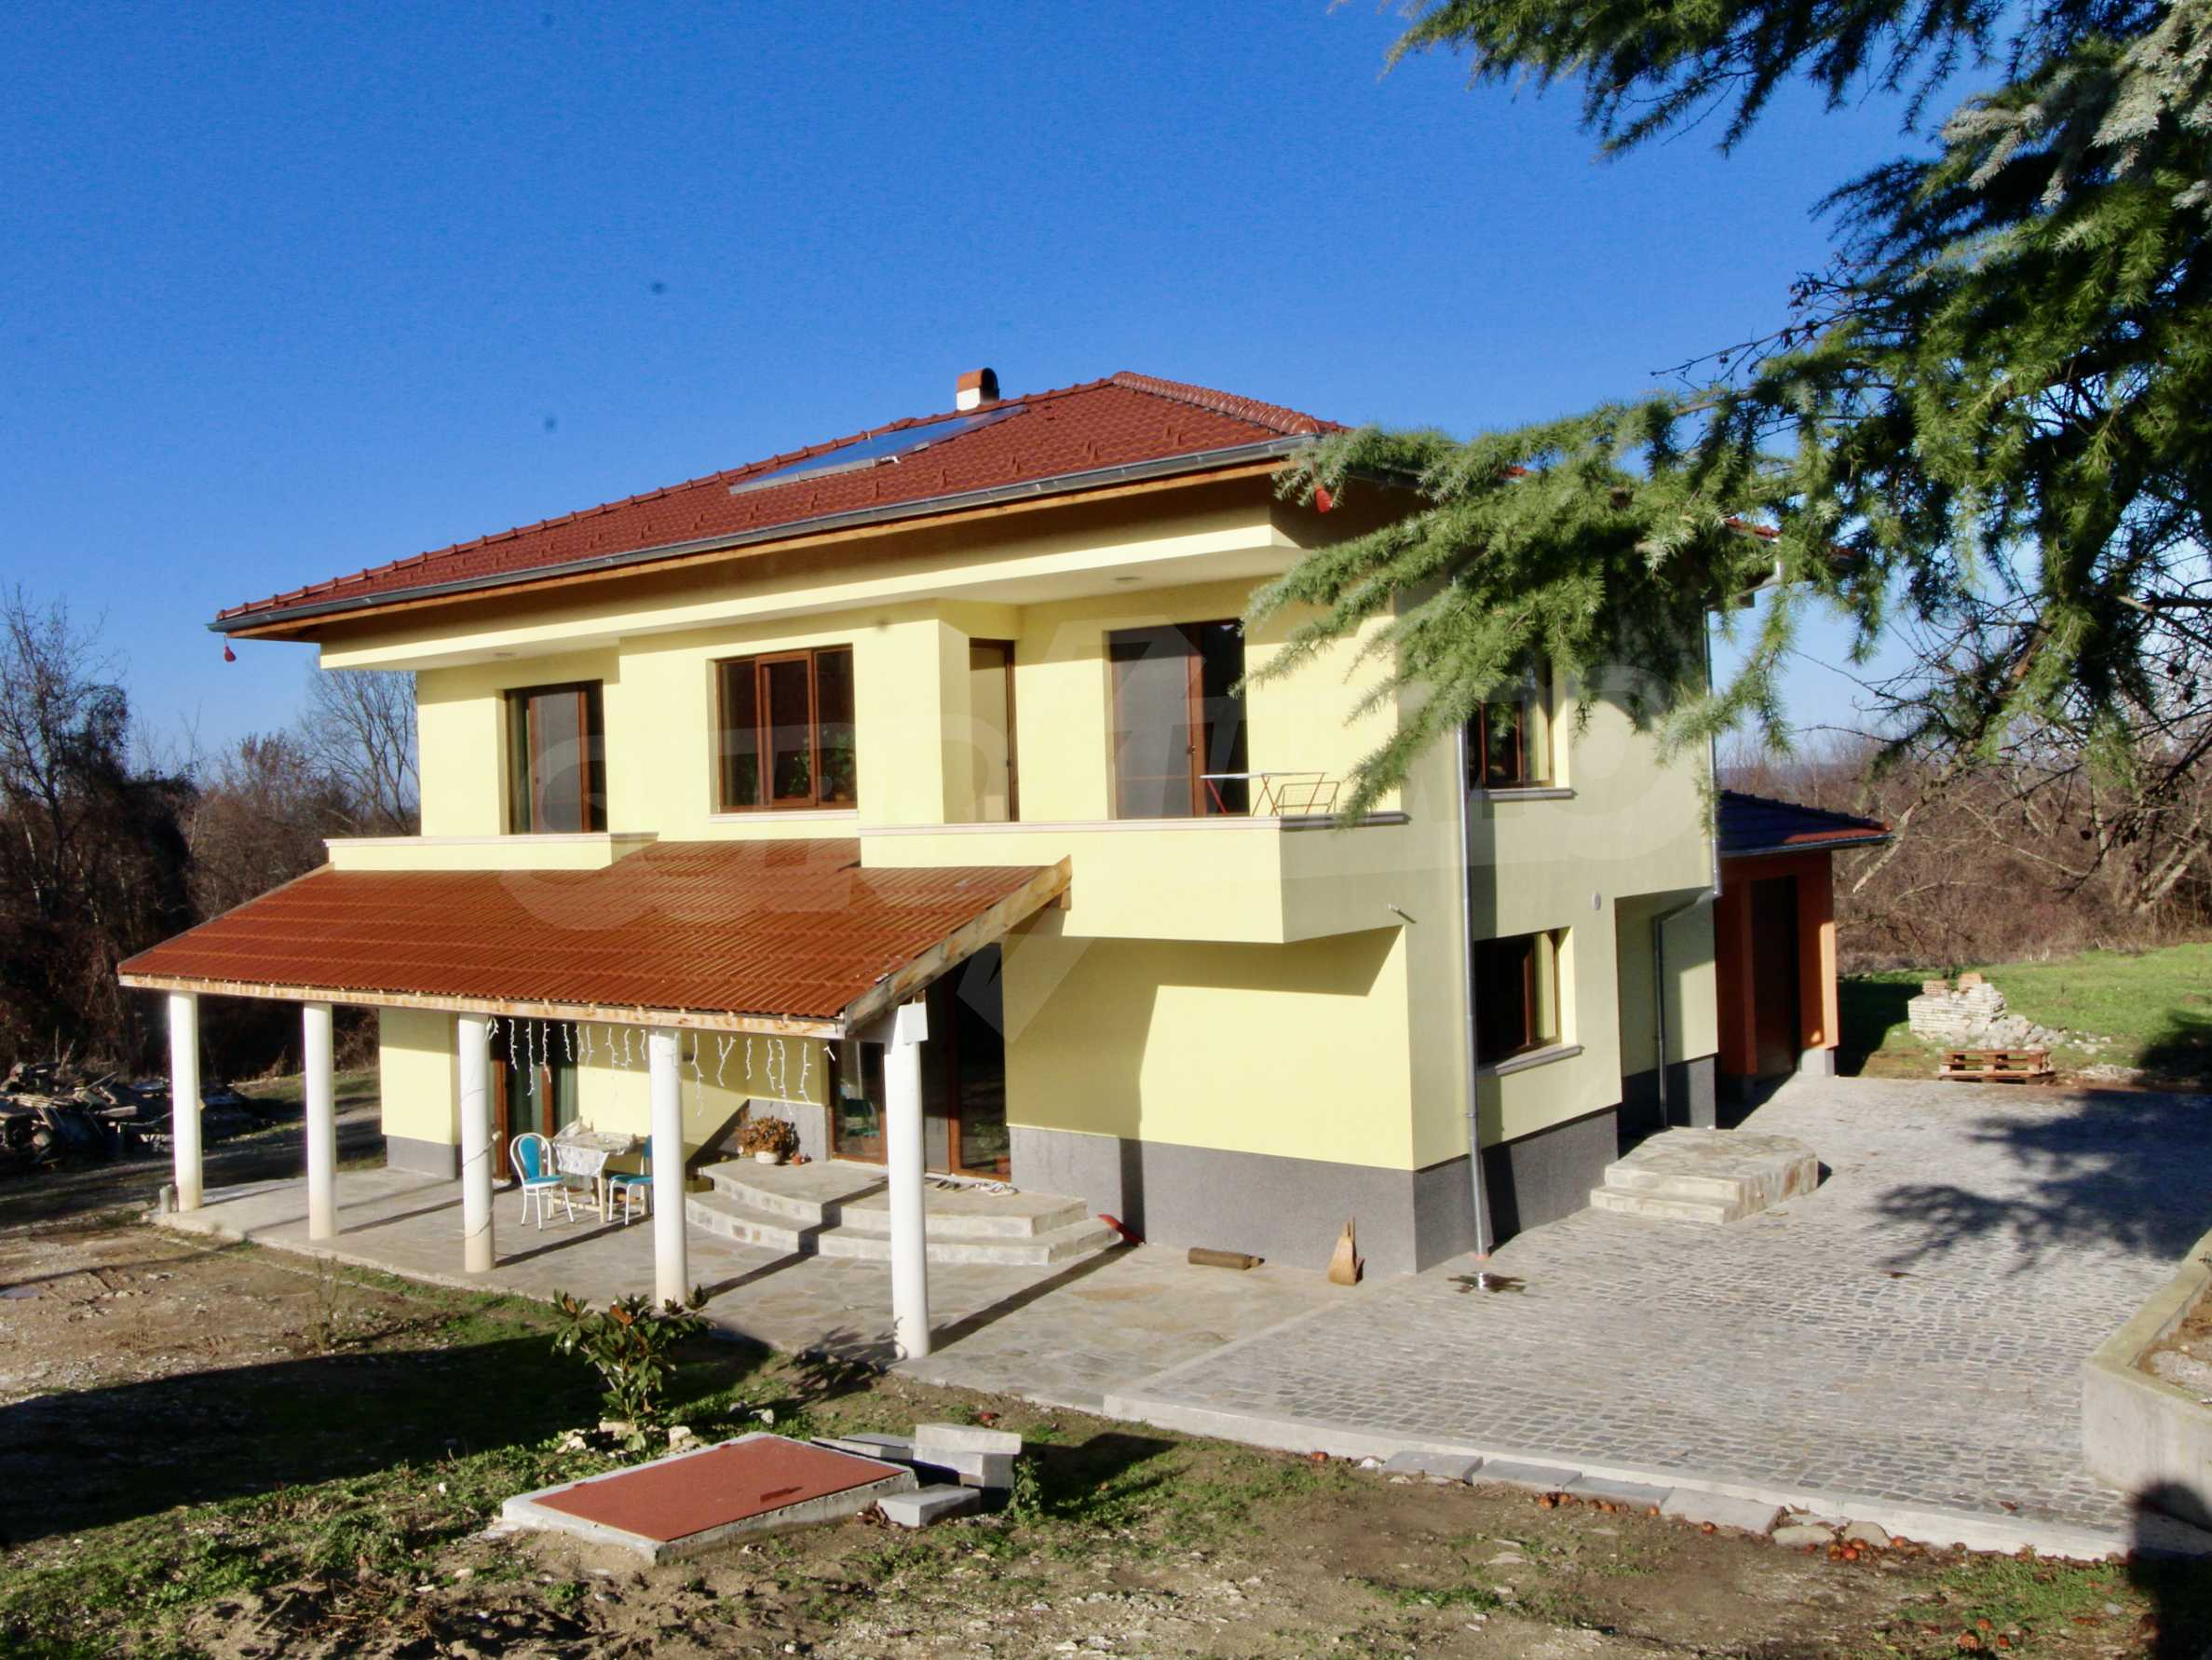 Newly built two-storey house with two garages in Dragizhevo village